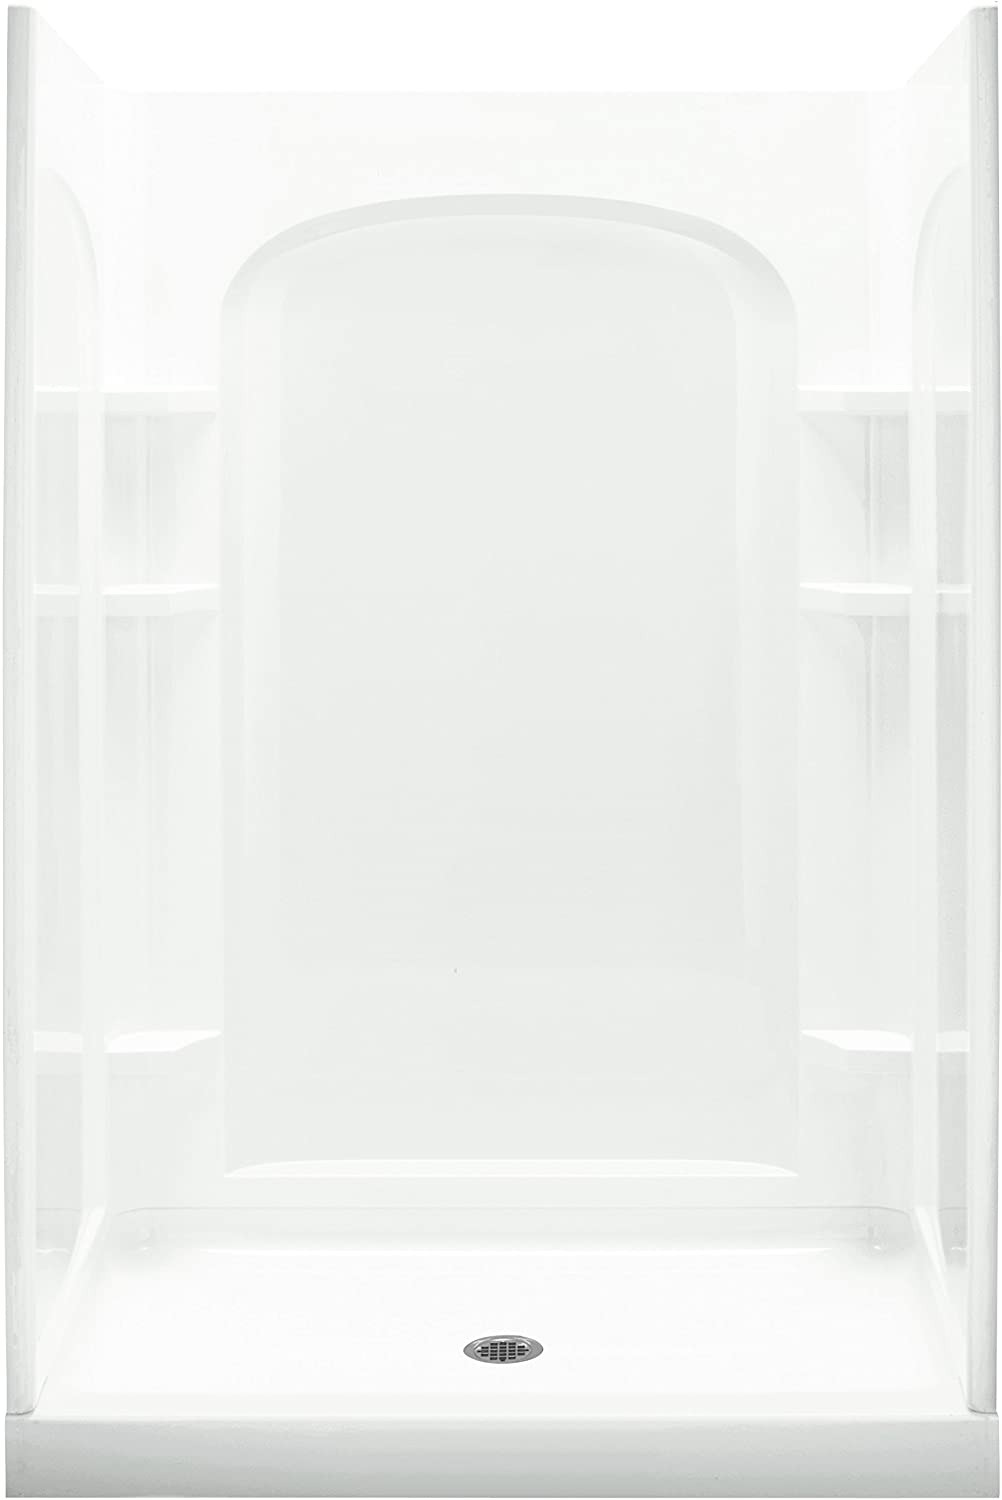 Kbrs Shower Base Customer Reviews Unique Sterling A Kohler Pany 0 Ensemble Vikrell 35 25 In X 77 In Alcove Shower Wall and Base Kit White